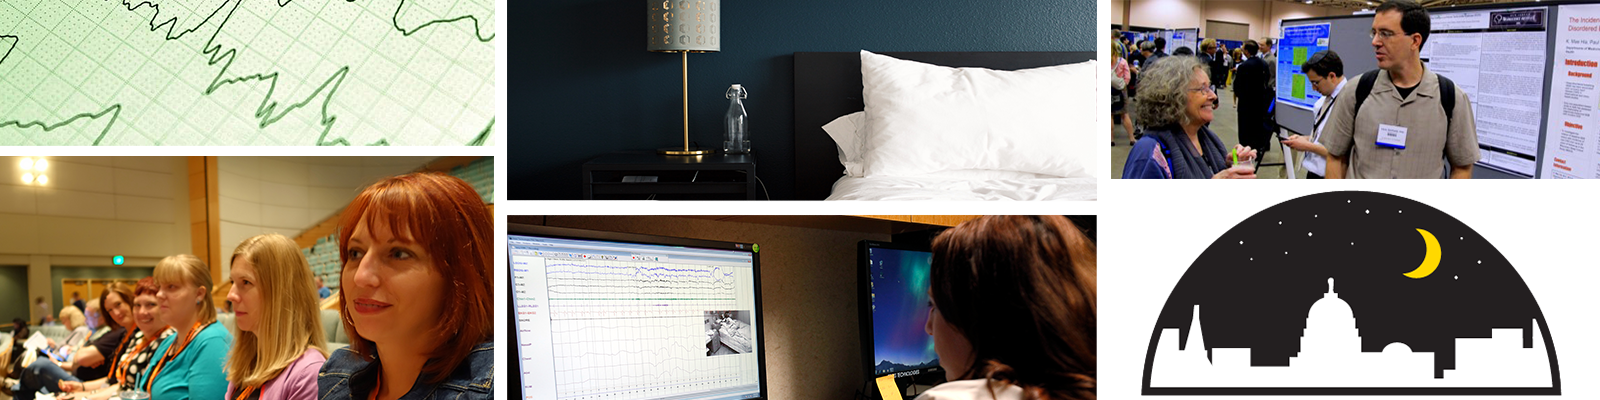 Banner photo, a collage of different things relating to the SLEEP cohort study, including a chart depicting breathing or heart rate, women sitting in a lecture hall, a bed and a nightstand, a woman working performing research on a computer, a man presenting research at a convention, and the SLEEP logo, which is a crescent moon over the Madison skyline.